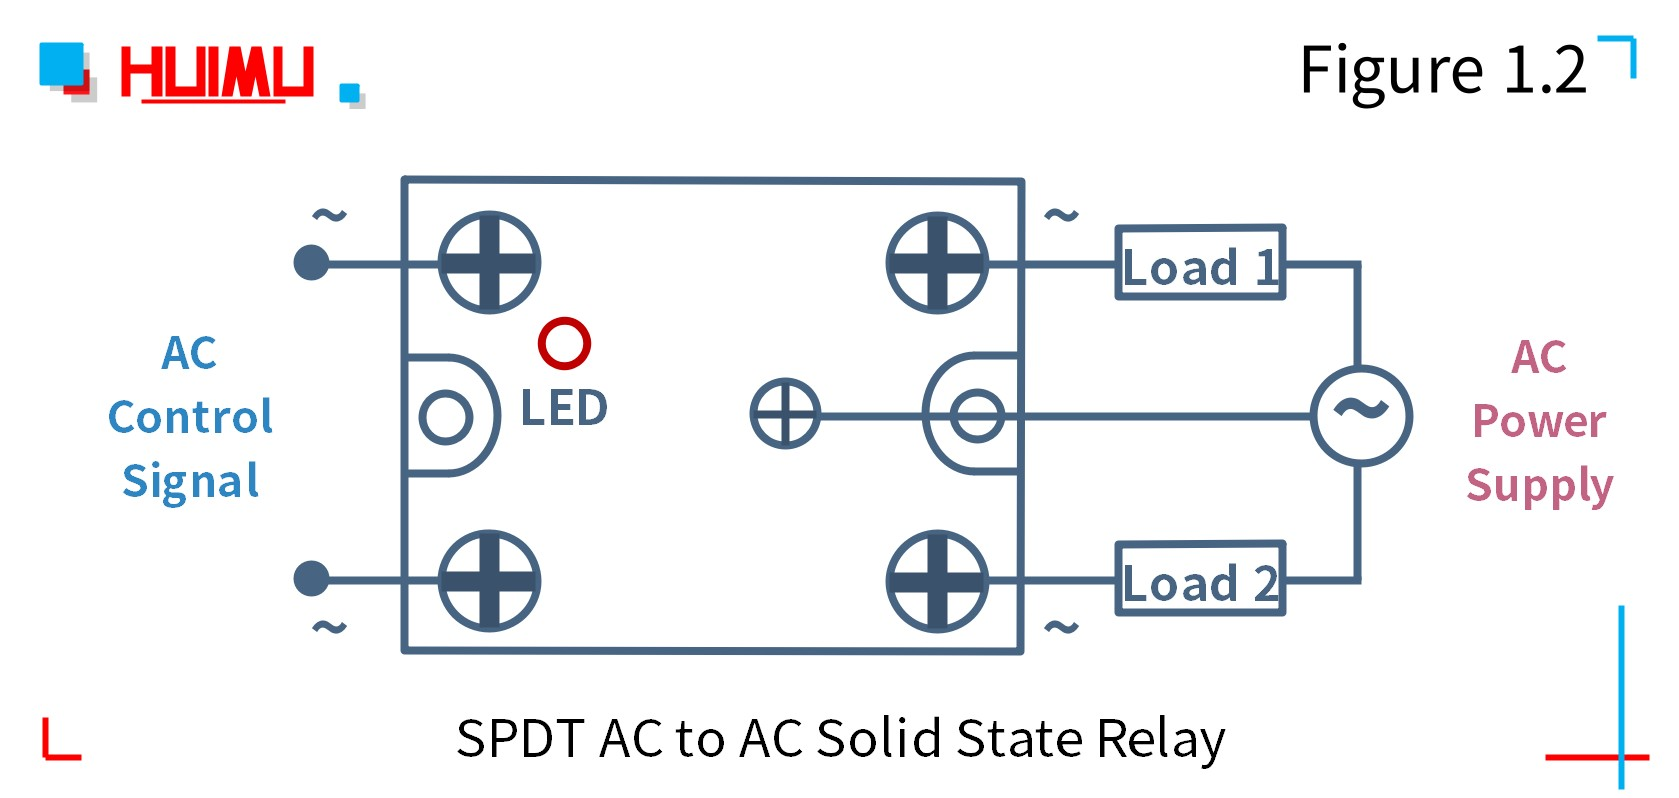 How to wire MGR mager MGR-1AKB4840 spdt ac to ac solid state relay?